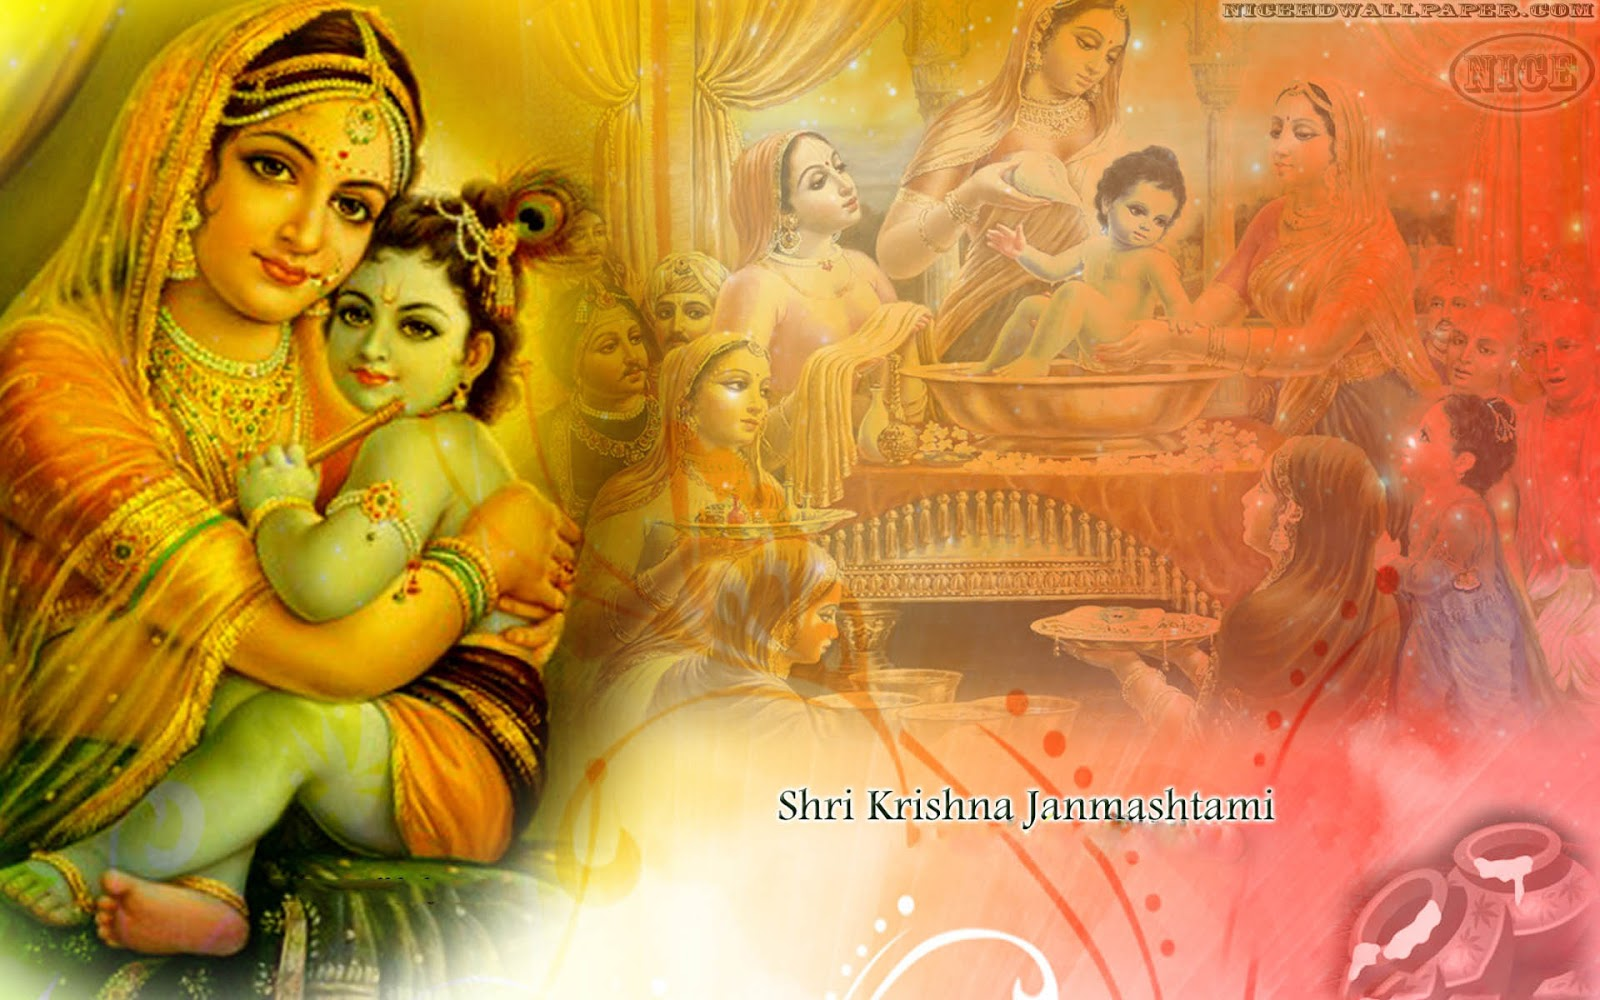 Letest Sad Boy Shayari Pictures Full Hd Wallpapers Ou Can: Letest Happy Krishna Janmashtami Pictures Full HD